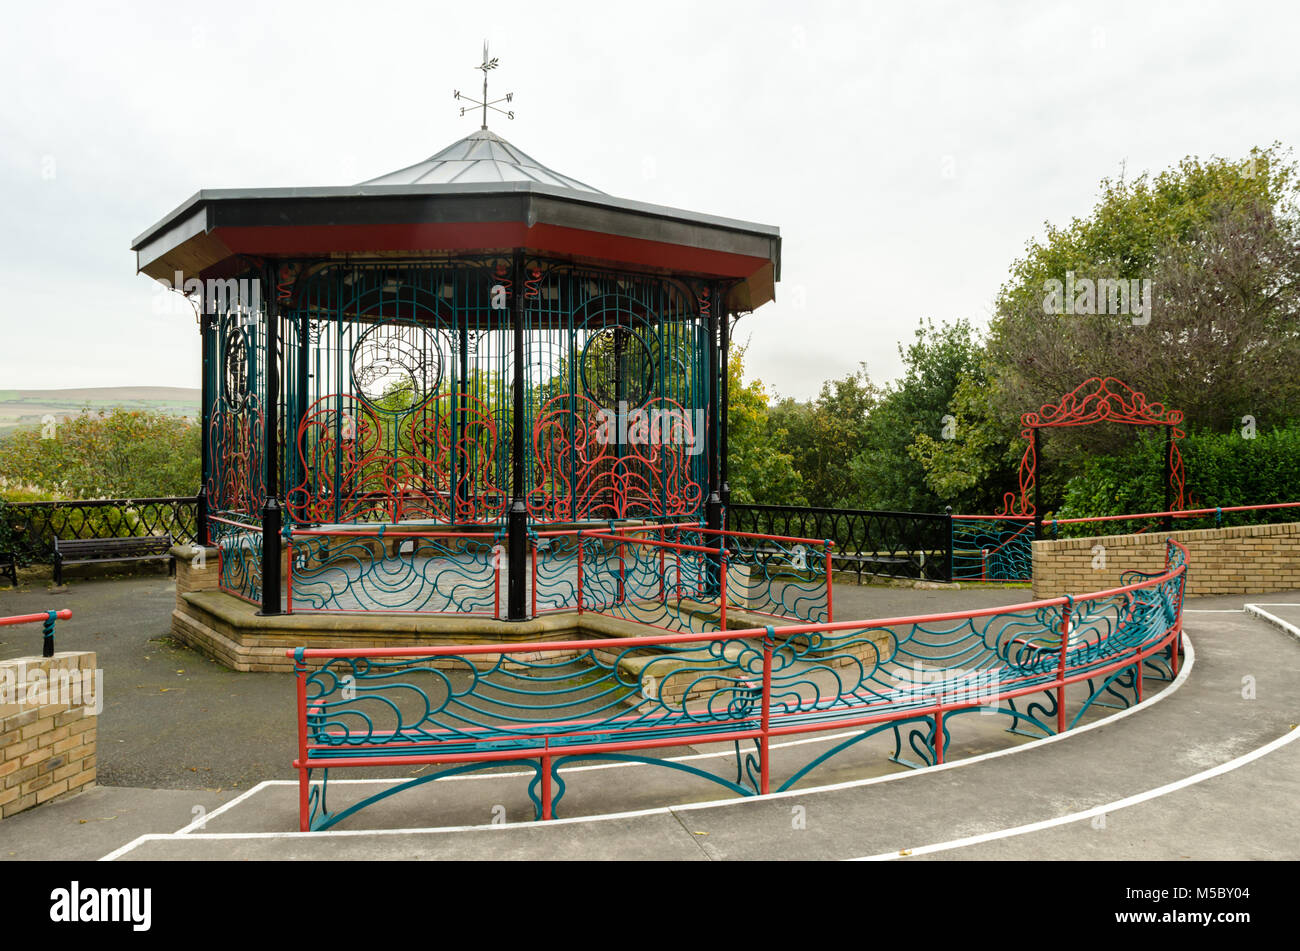 The Bandstand at Glenside, Saltburn-by-the-Sea Stock Photo